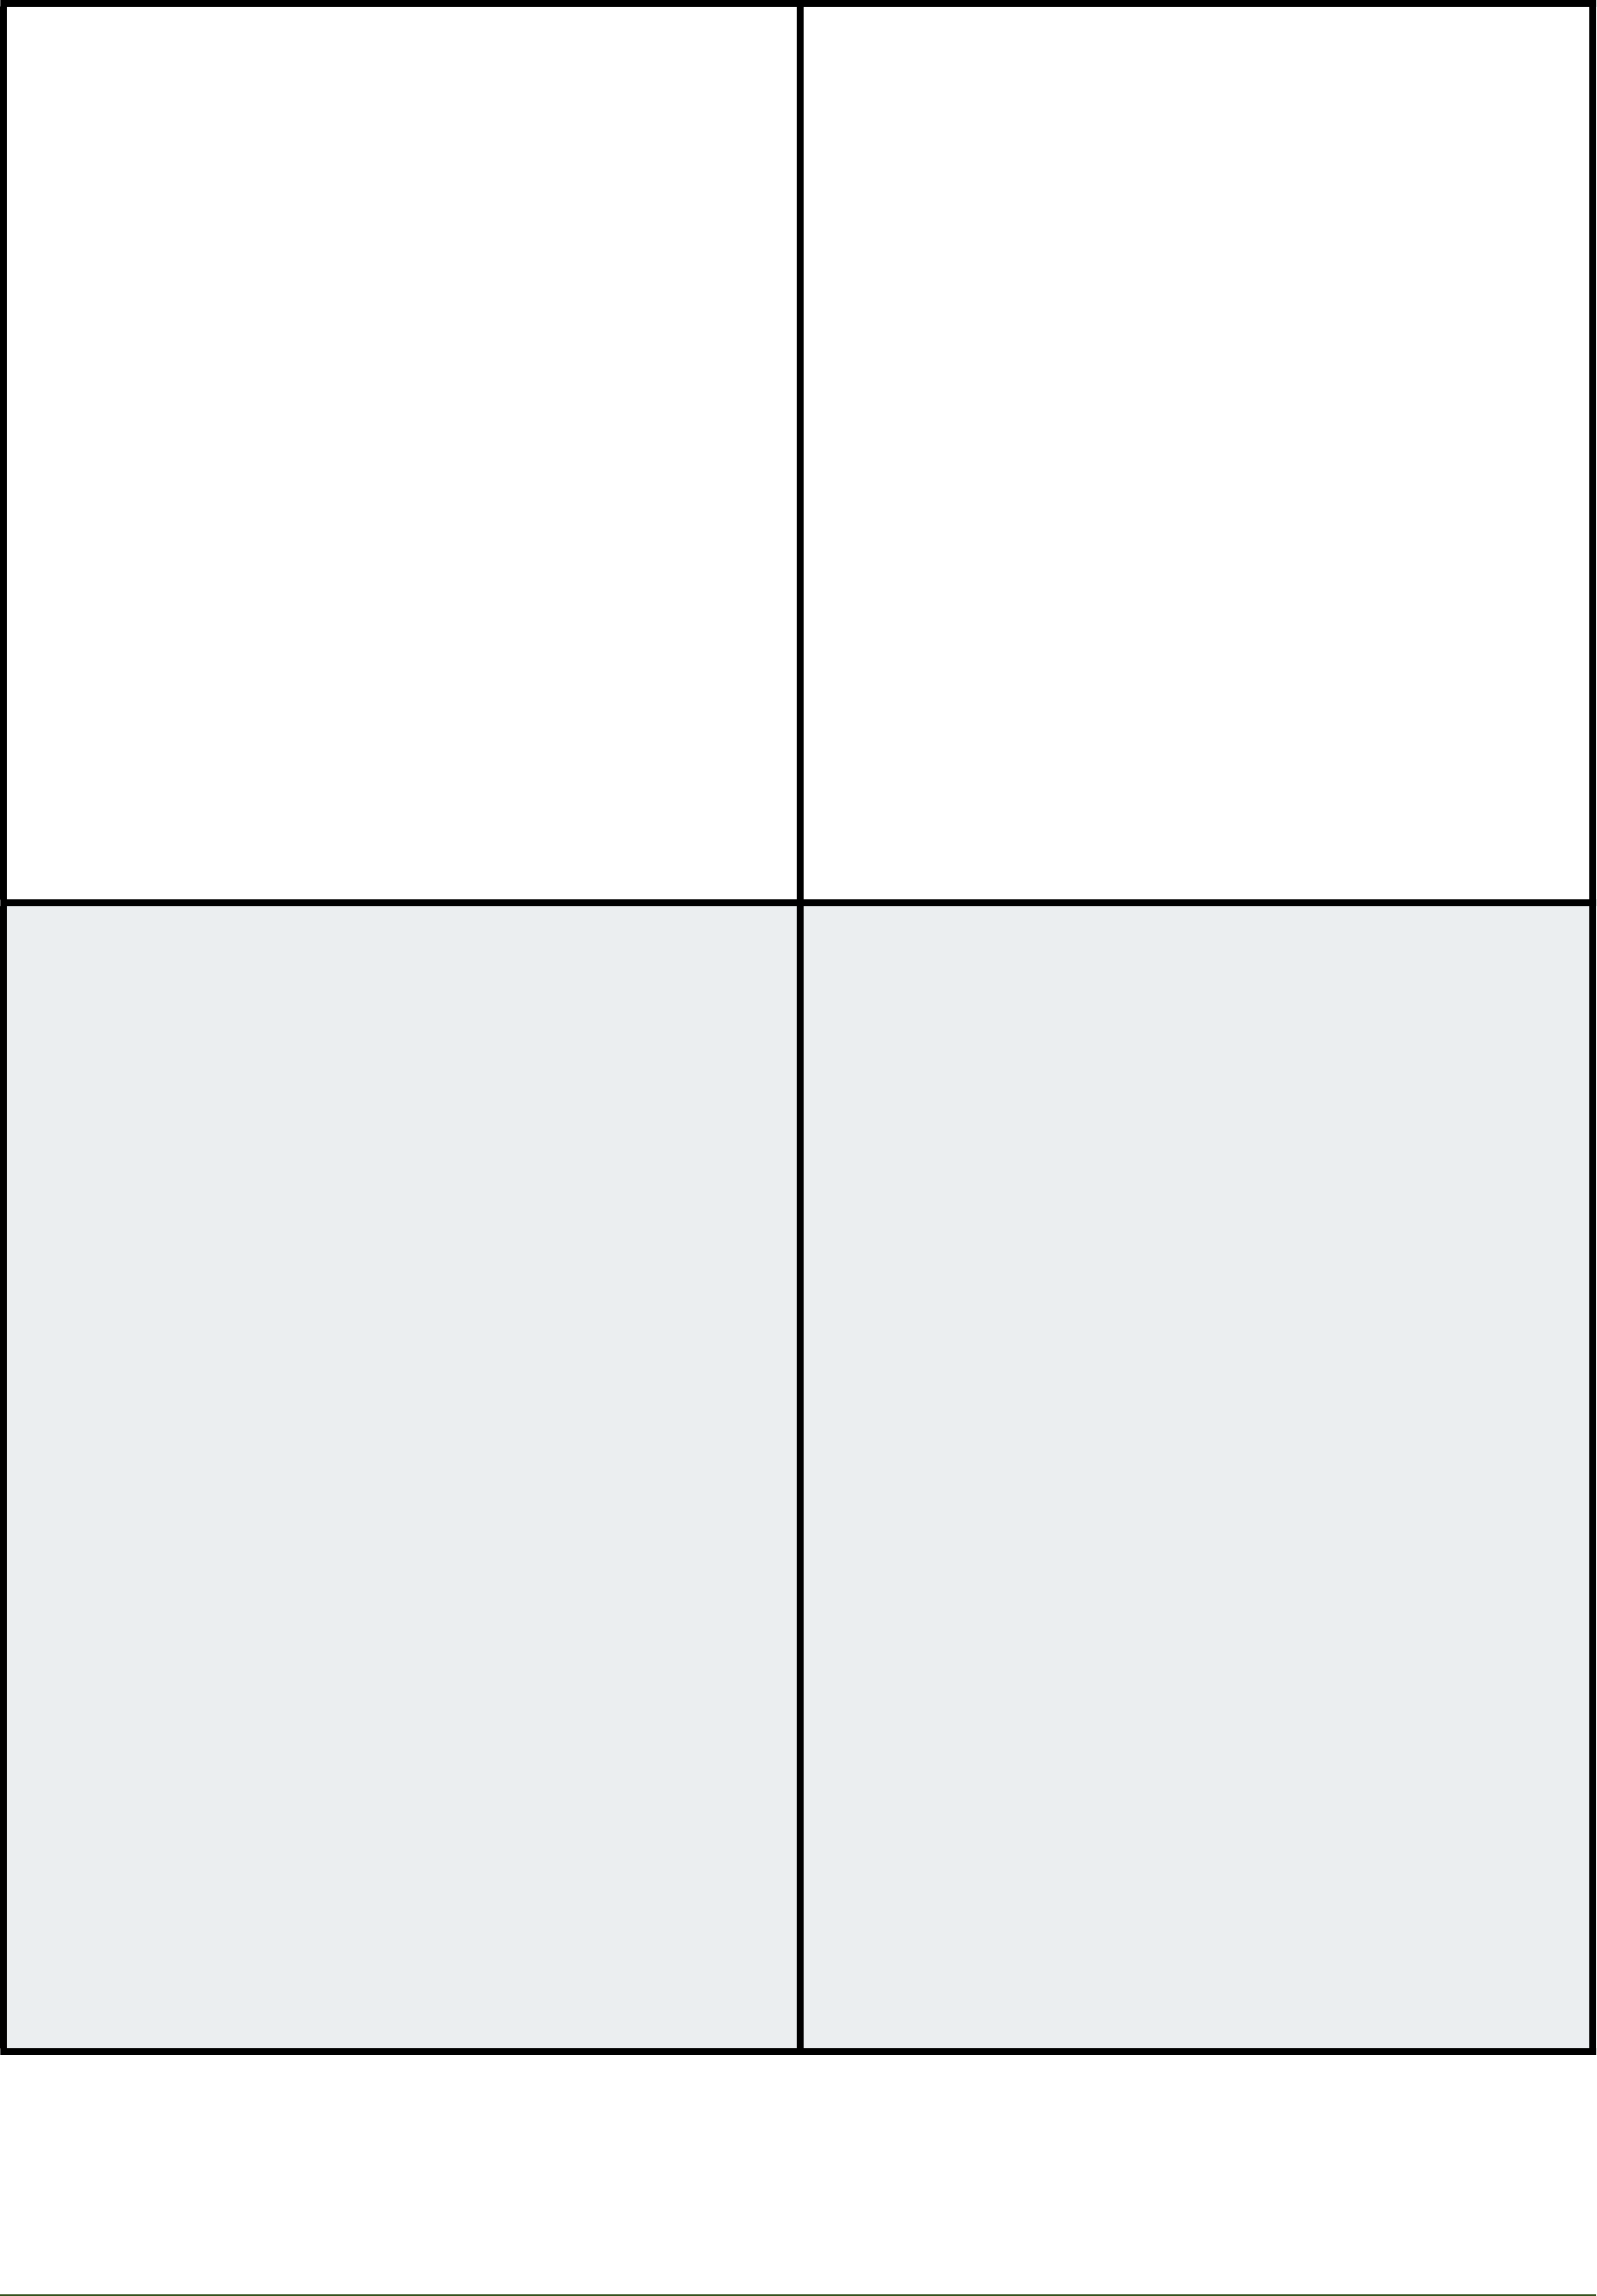 time management grid template free download